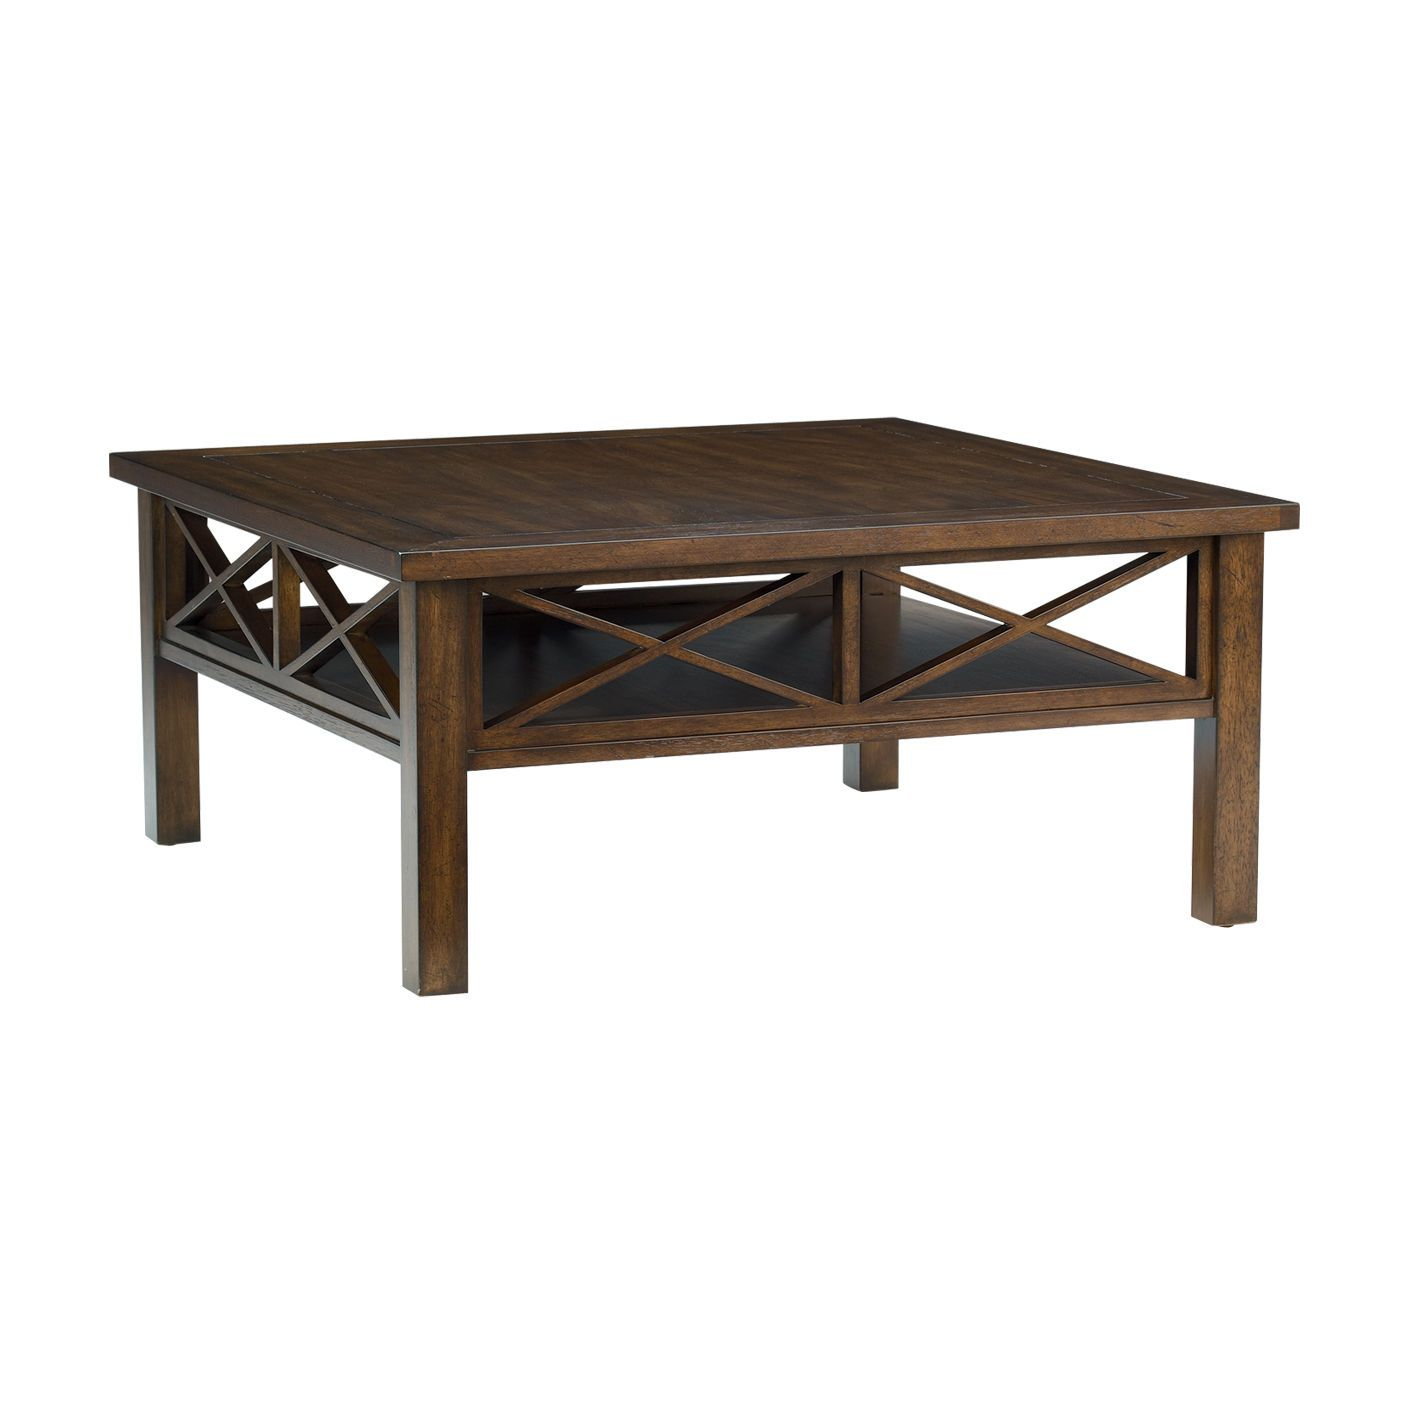 Ethan Allen Tuscan Coffee Table: Dexter Square Coffee Table - Ethan Allen US